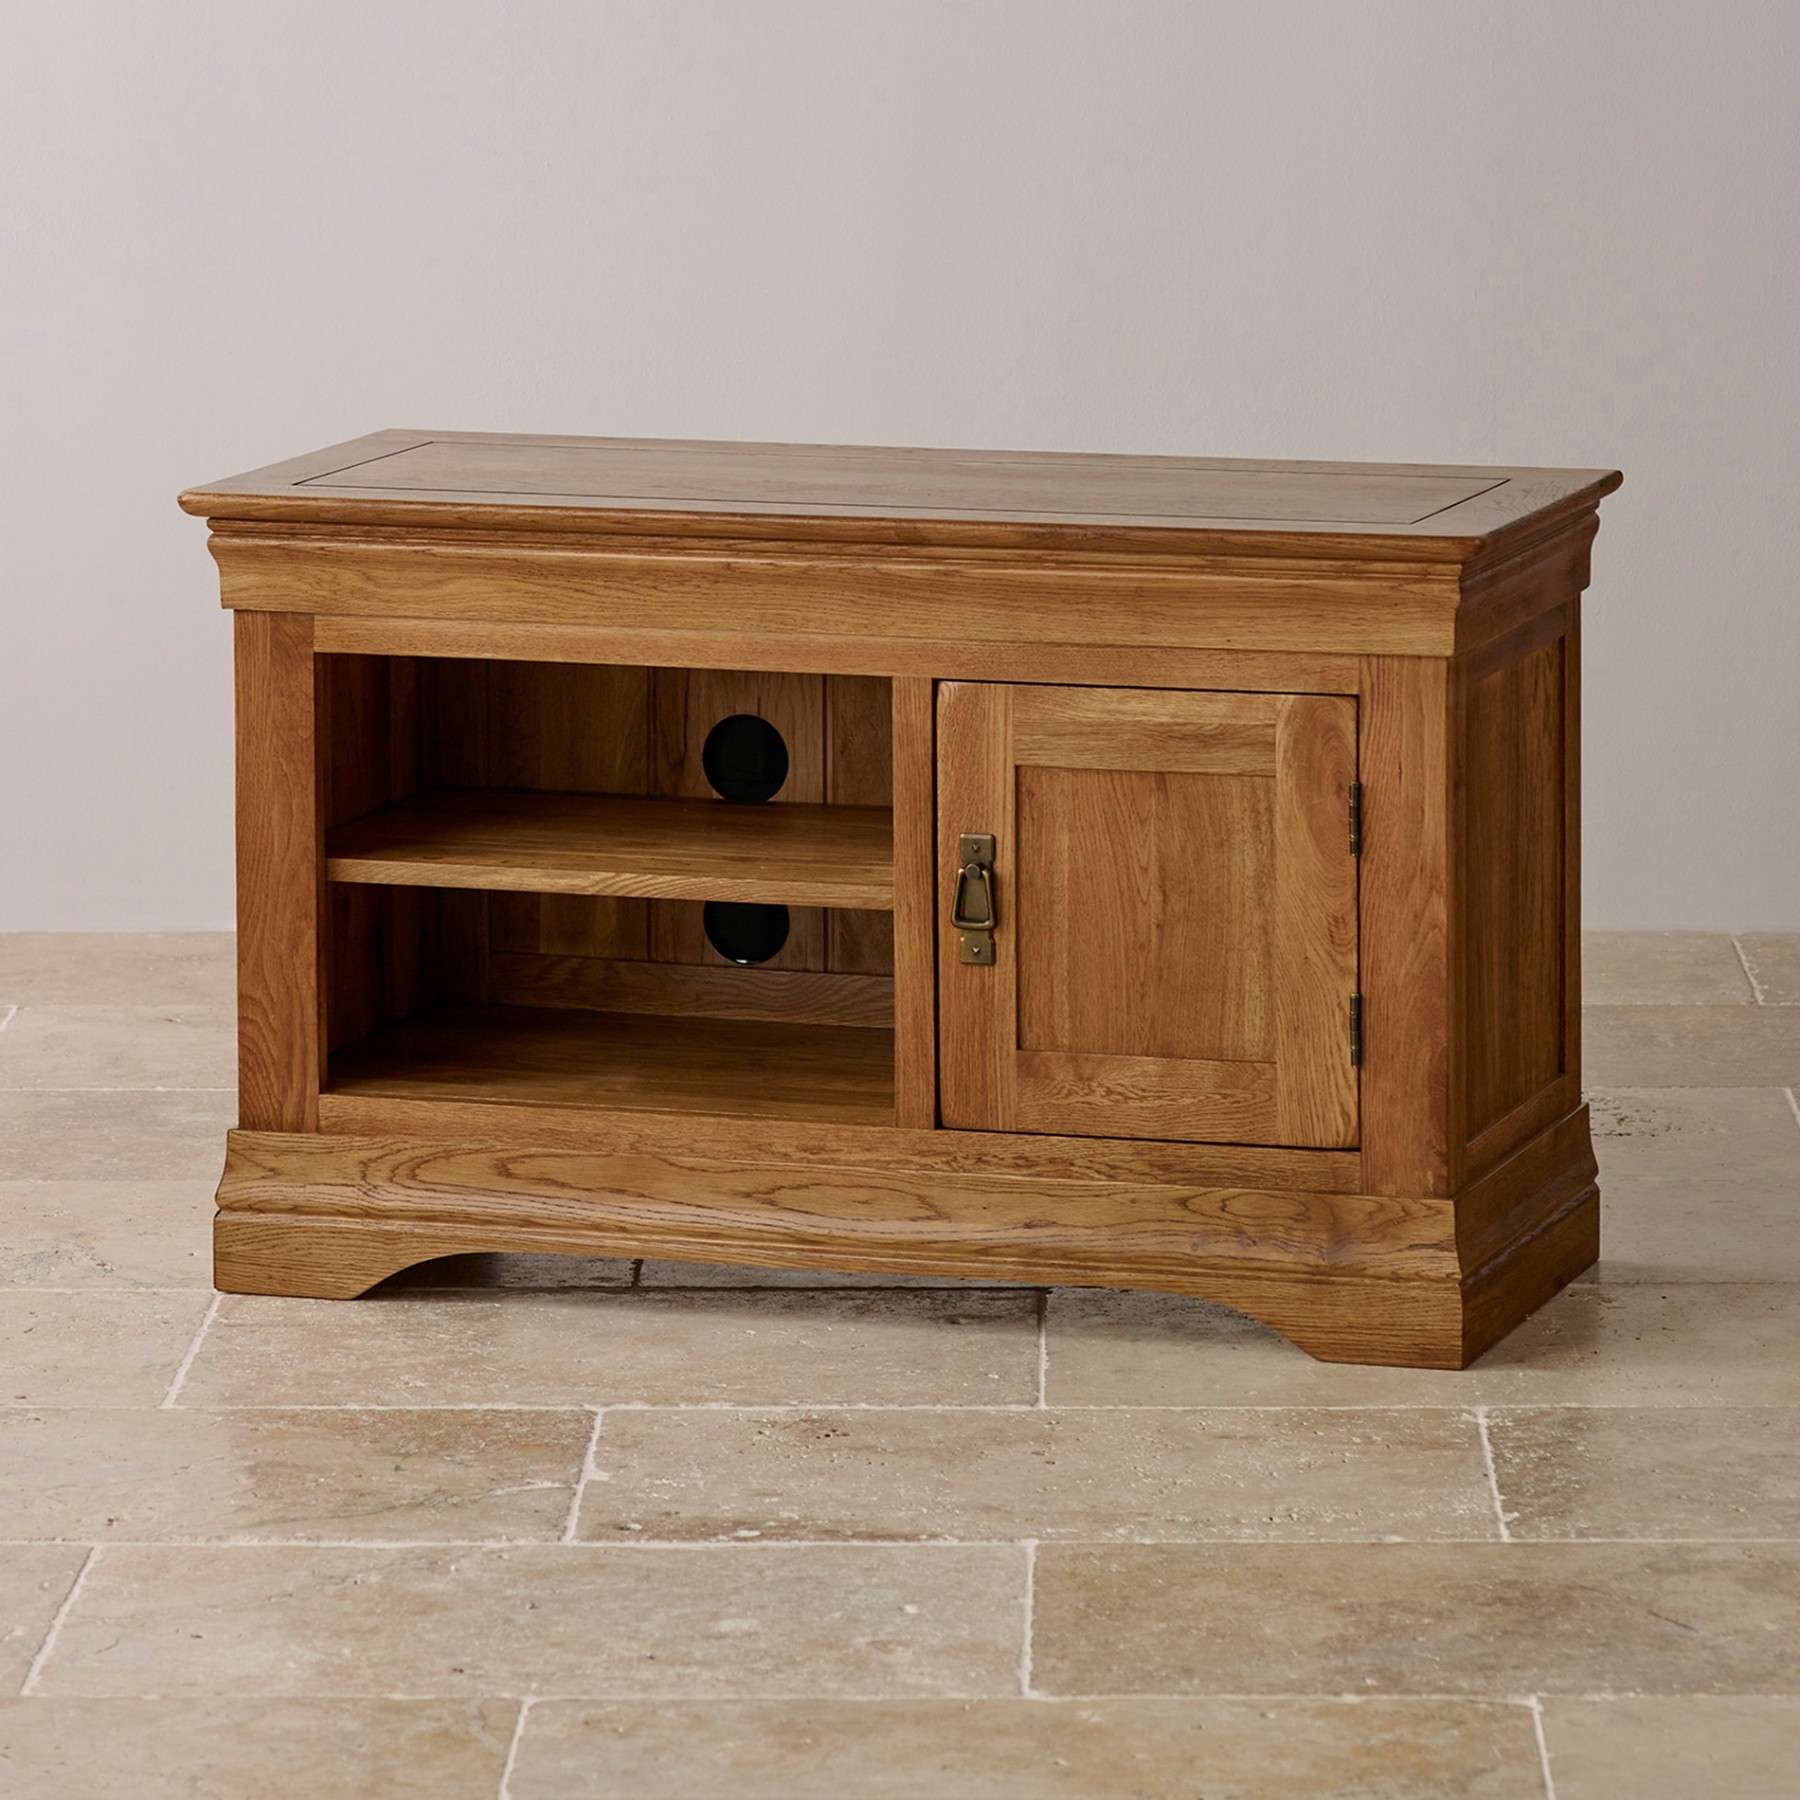 French Farmhouse Rustic Solid Oak Small Tv Stand Oak Furniture Land Intended For Rustic Oak Tv Stands (Gallery 13 of 15)